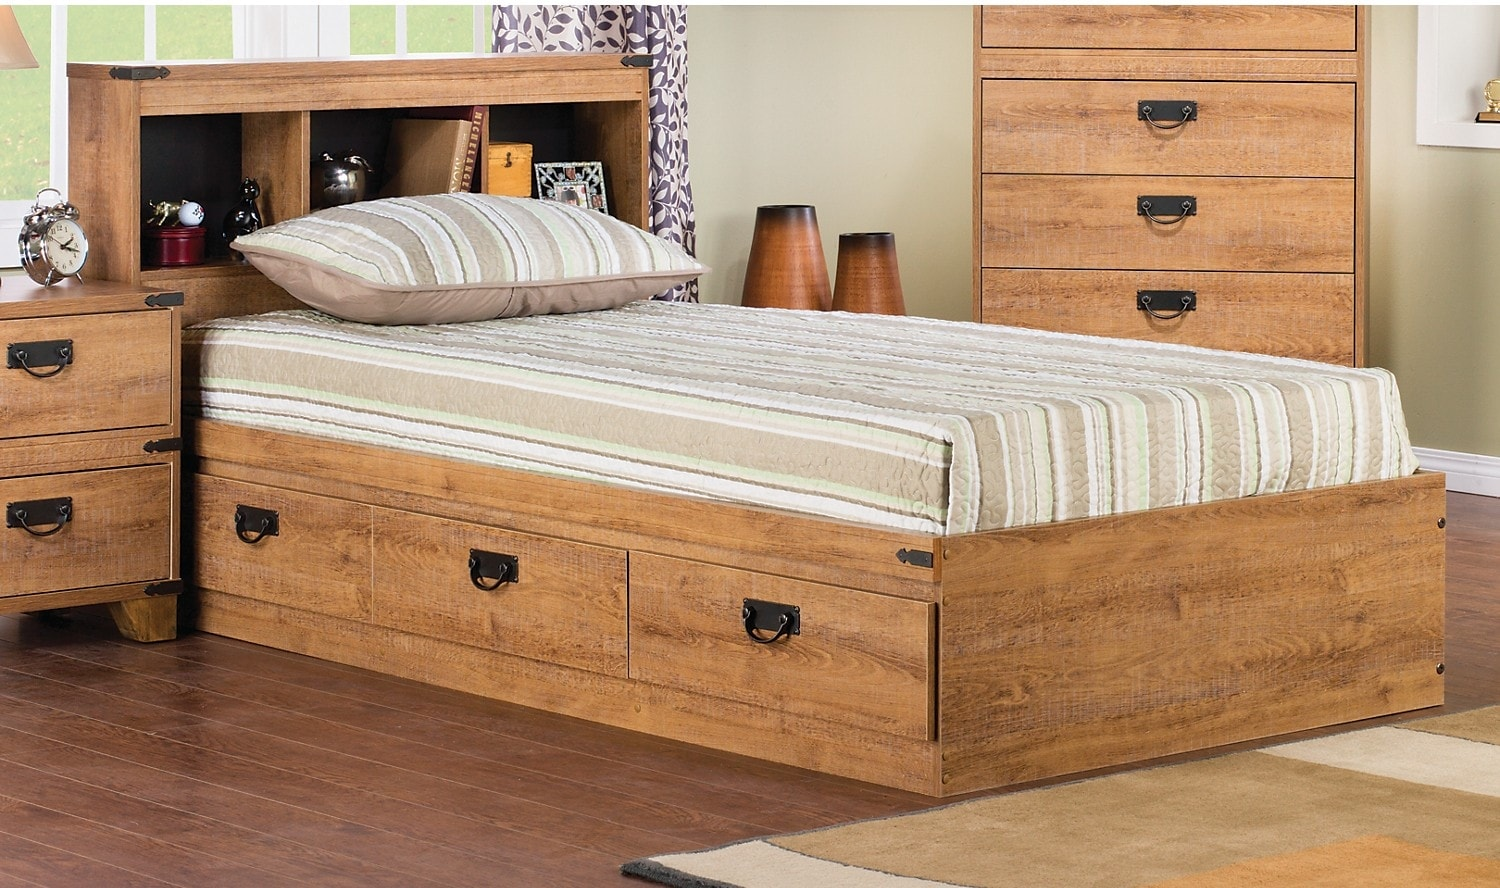 Winnipeg Kitchen Cabinets Driftwood Mates Bed With Headboard The Brick